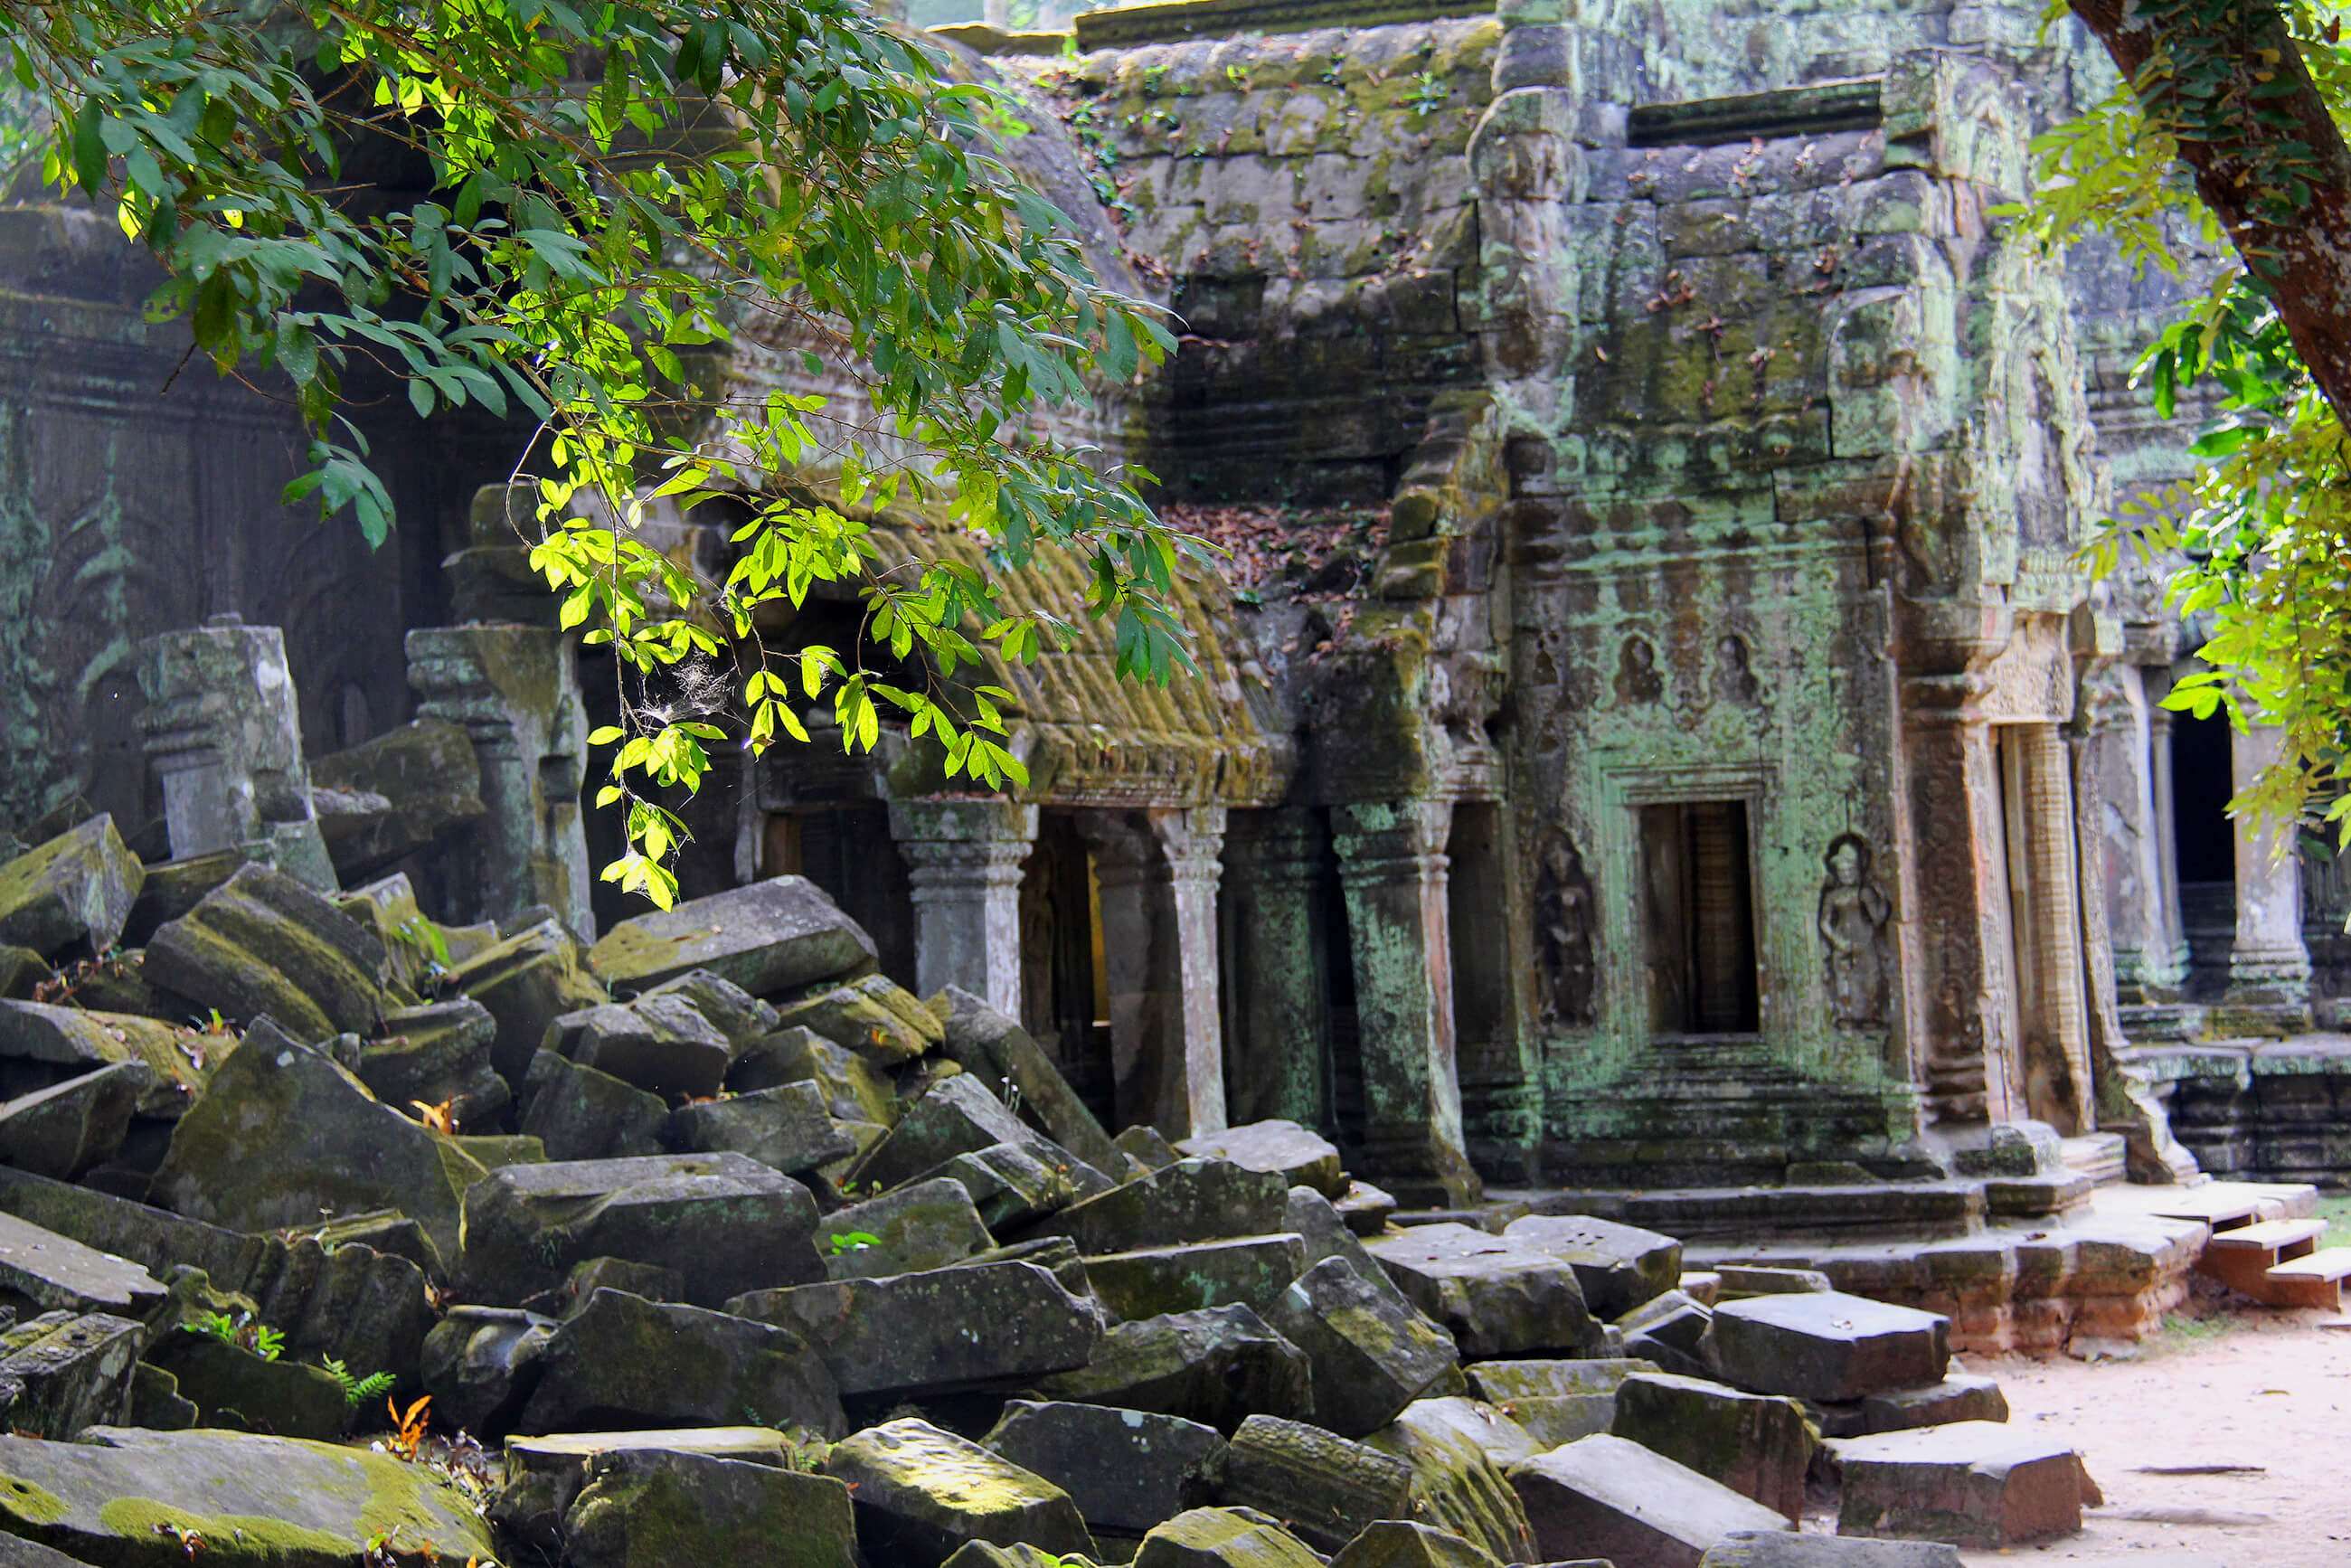 https://bubo.sk/uploads/galleries/7382/pxb_kambodza_ta-prohm-temple-934058.jpg